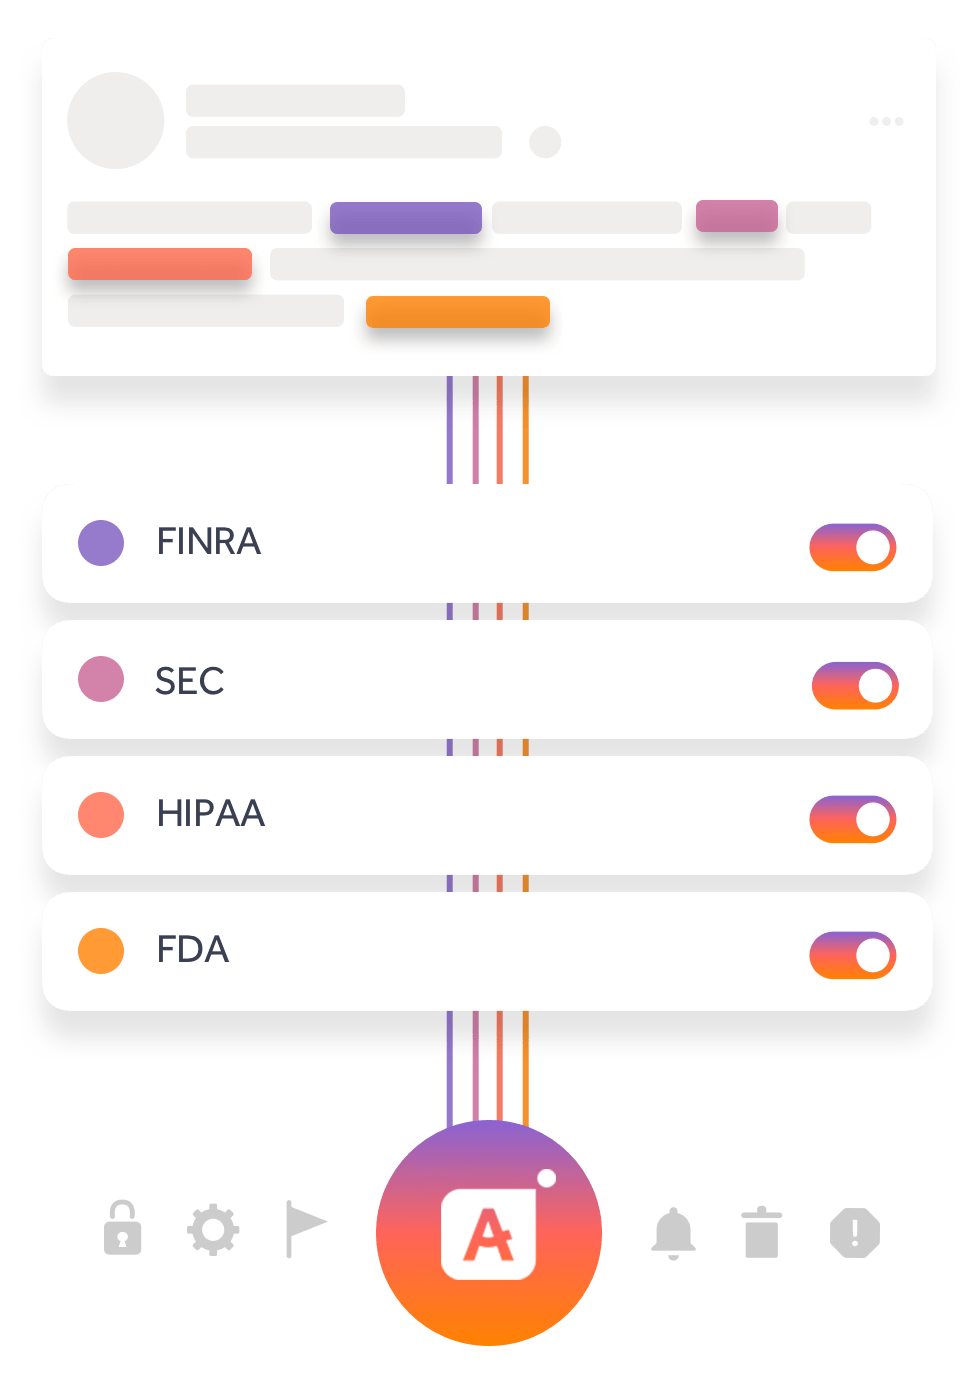 NEWautomated-actions-workplace-finra-sec-hipaa-fda-1